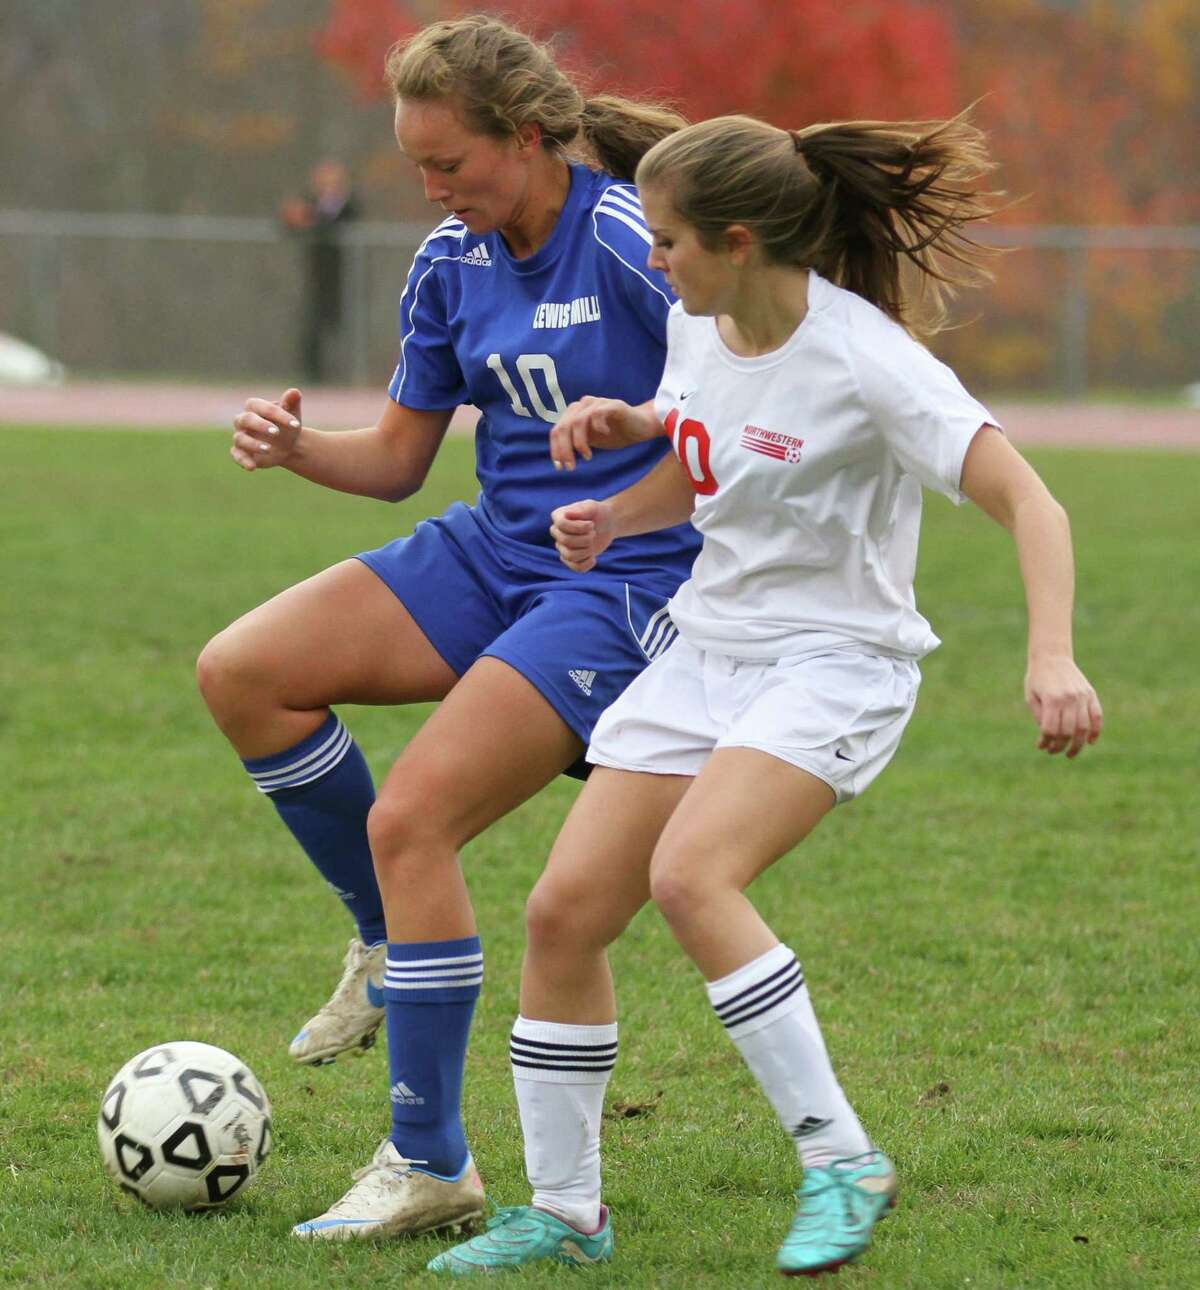 Monique Claude of Lewis Mills and Sam Gagne of Northwestern battle for possession of the ball. Photo by Marianne Killackey/Special to Register Citizen